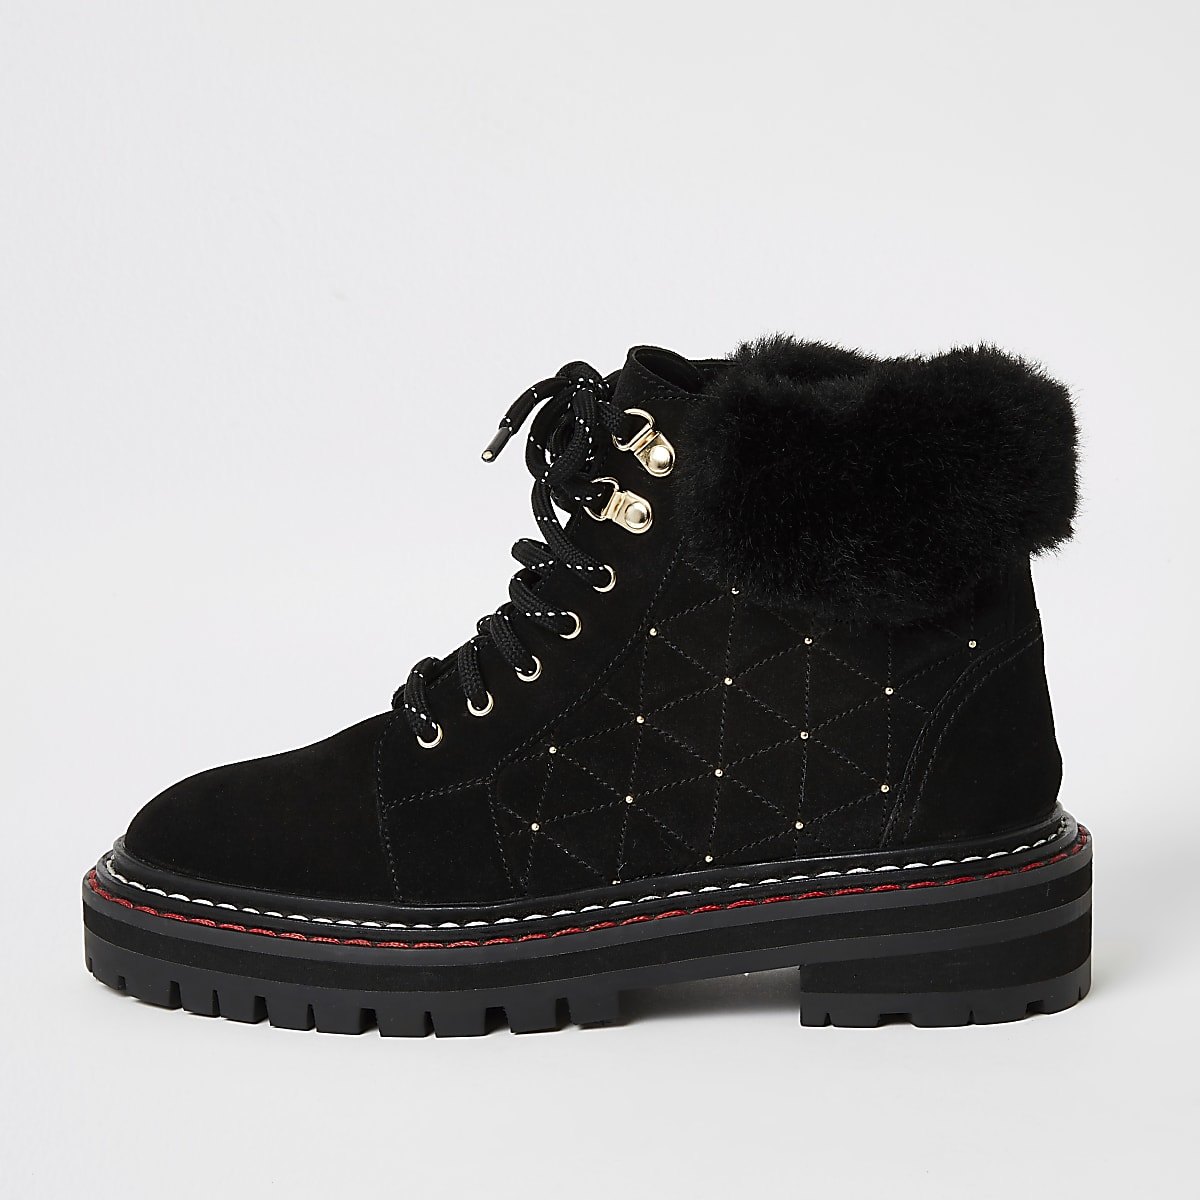 Black suede quilted stud lace-up hiker boots